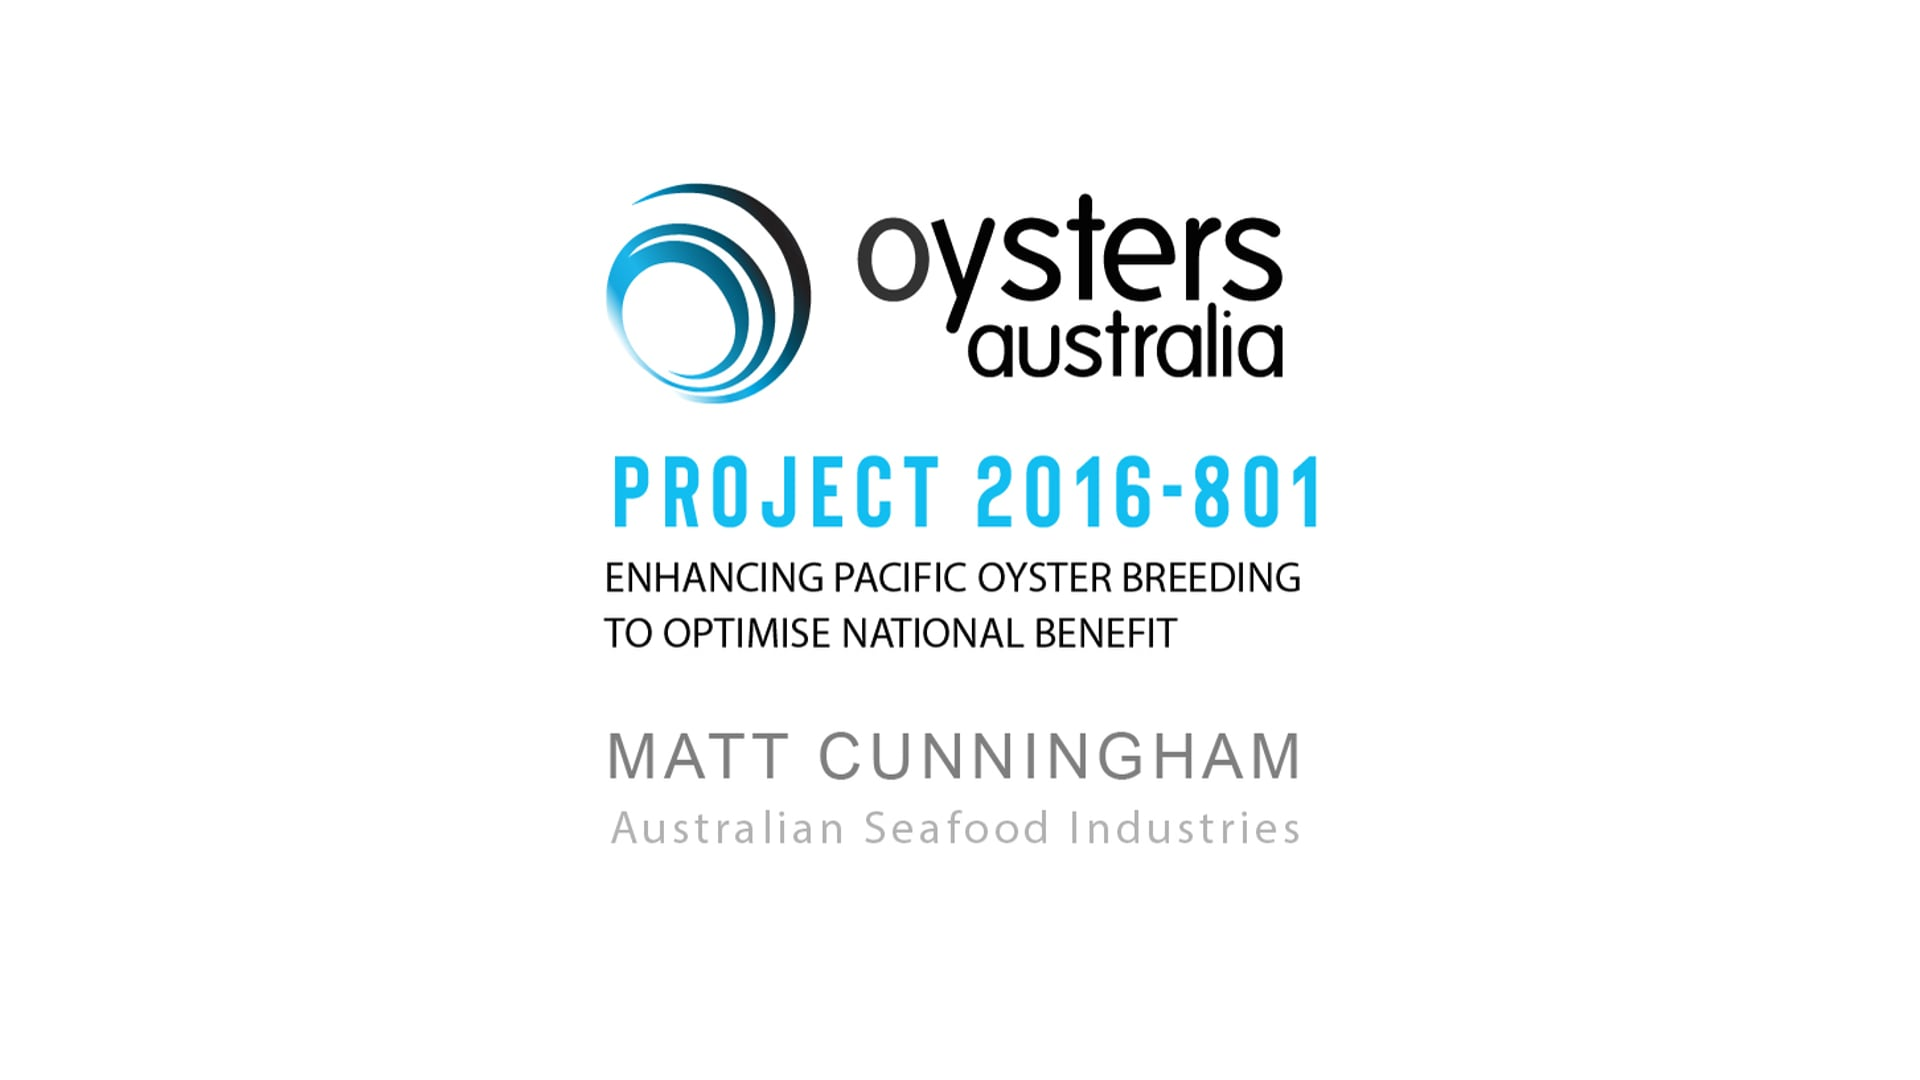 [SUMMARY] PROJECT 2016-801: Enhancing Pacific Oyster Breeding to Optimise National Benefit